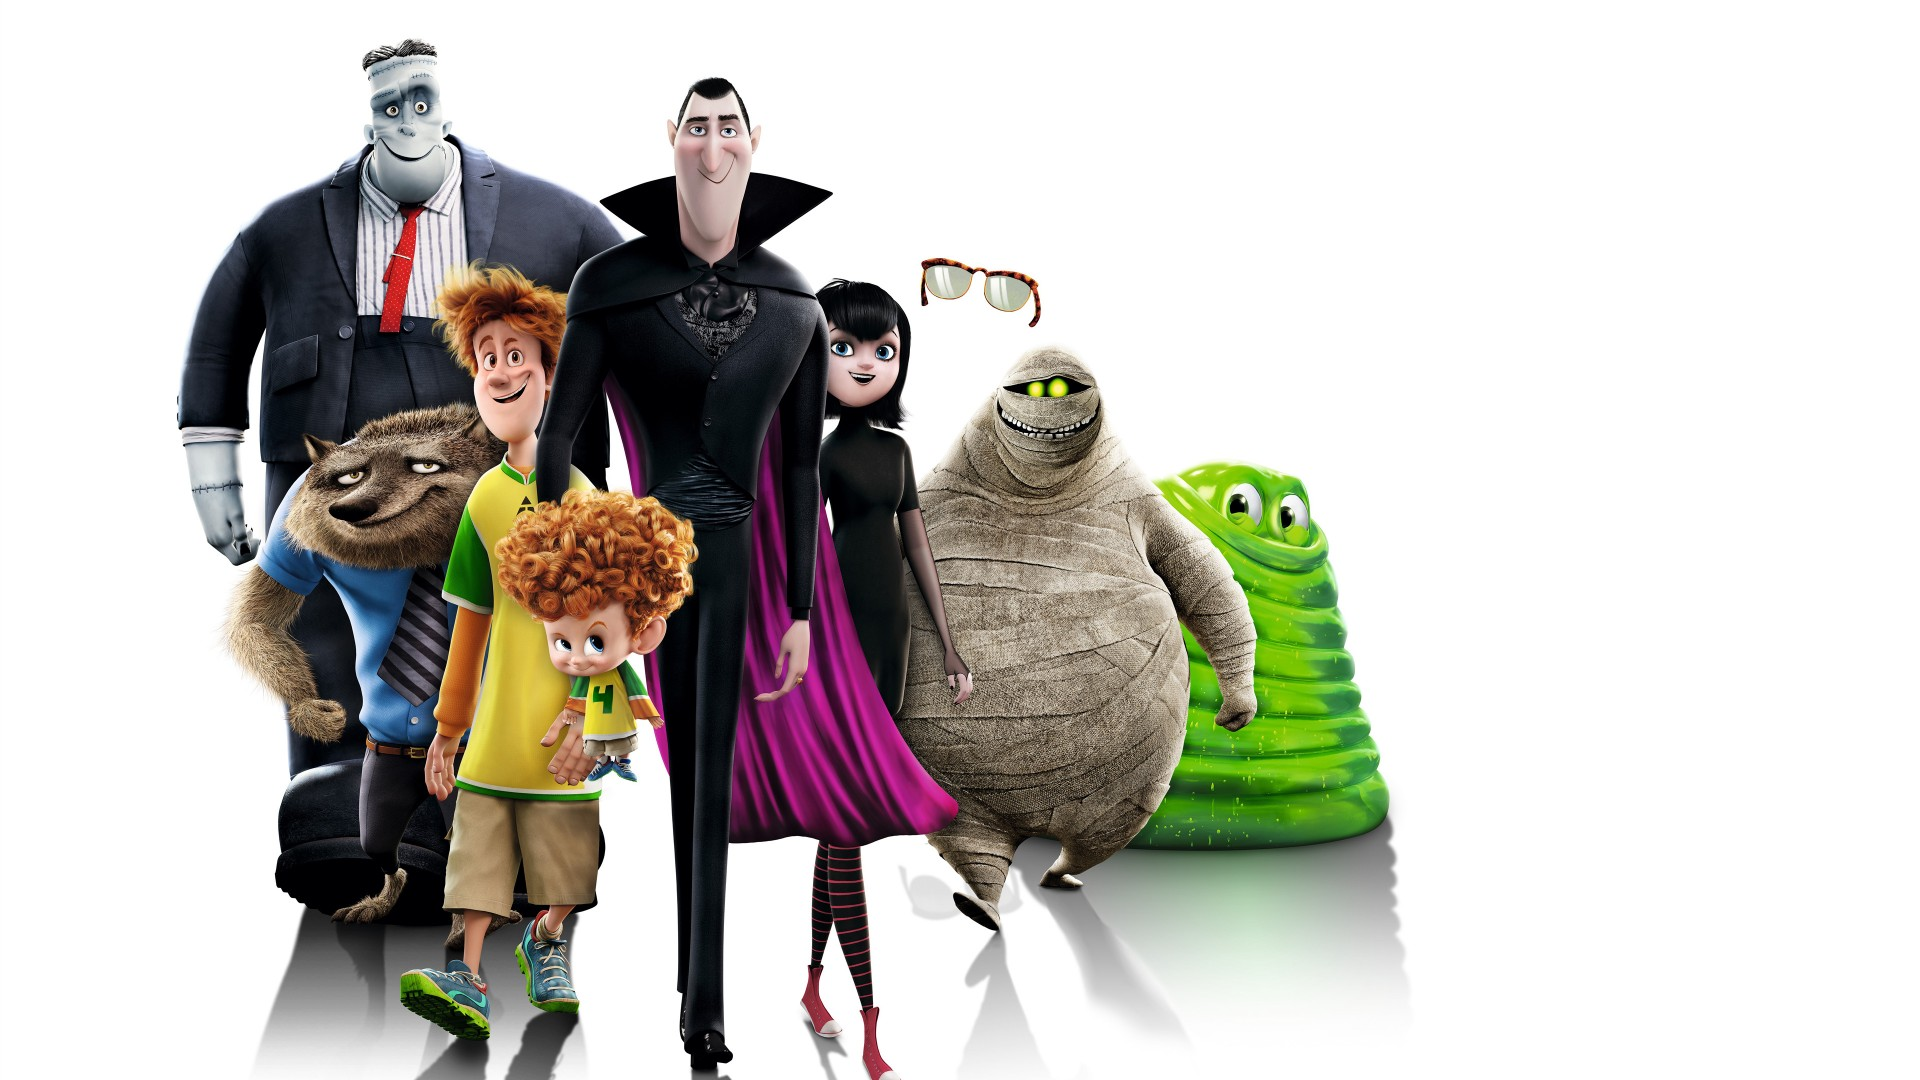 Christian Bale Iphone Wallpaper Hotel Transylvania 2 Movie Wallpapers Hd Wallpapers Id